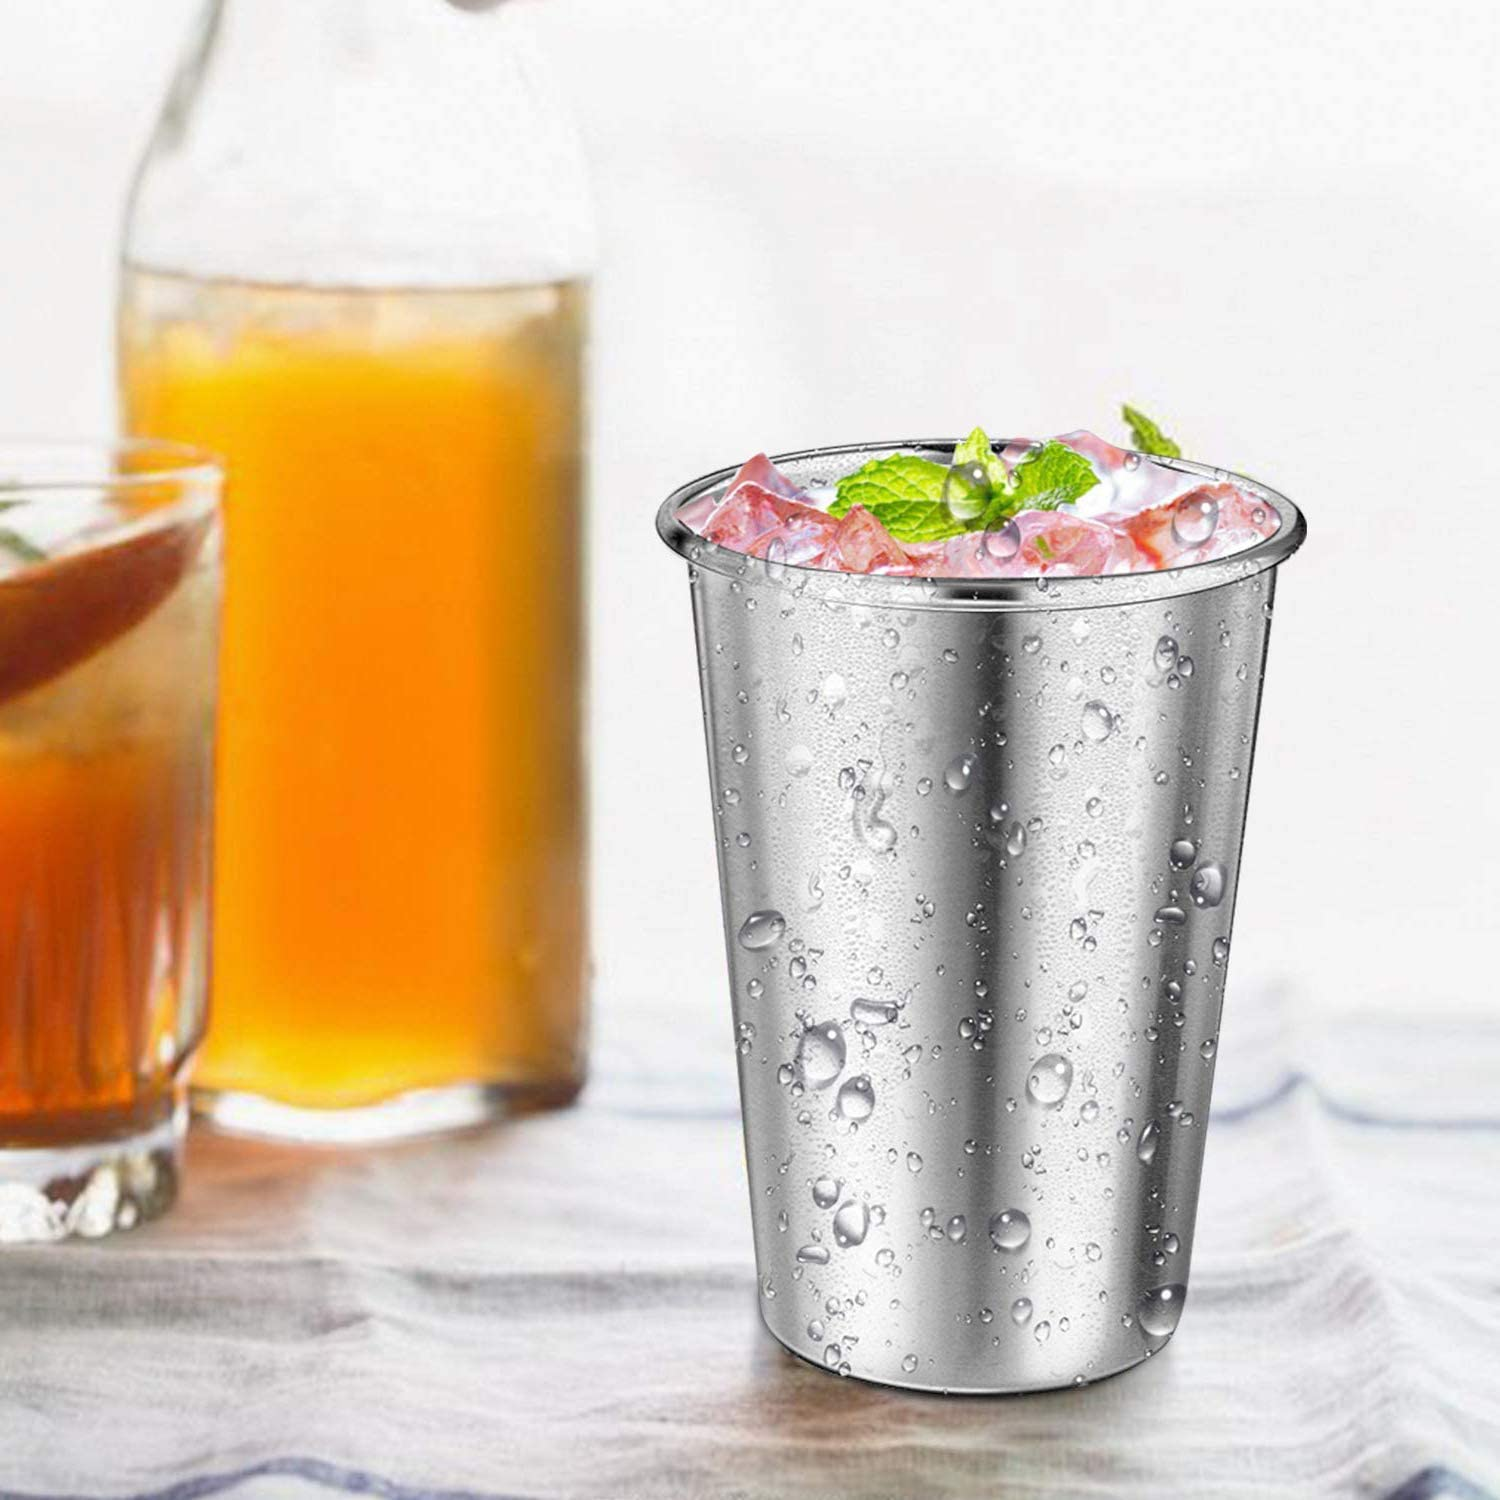 Steel Cups with Straws - ARKTEK Stainless Cups with Silicone Lid Stackable Metal Drinking Glasses, 16oz Drinking Tumblers with Straw Eco-Friendly for Party